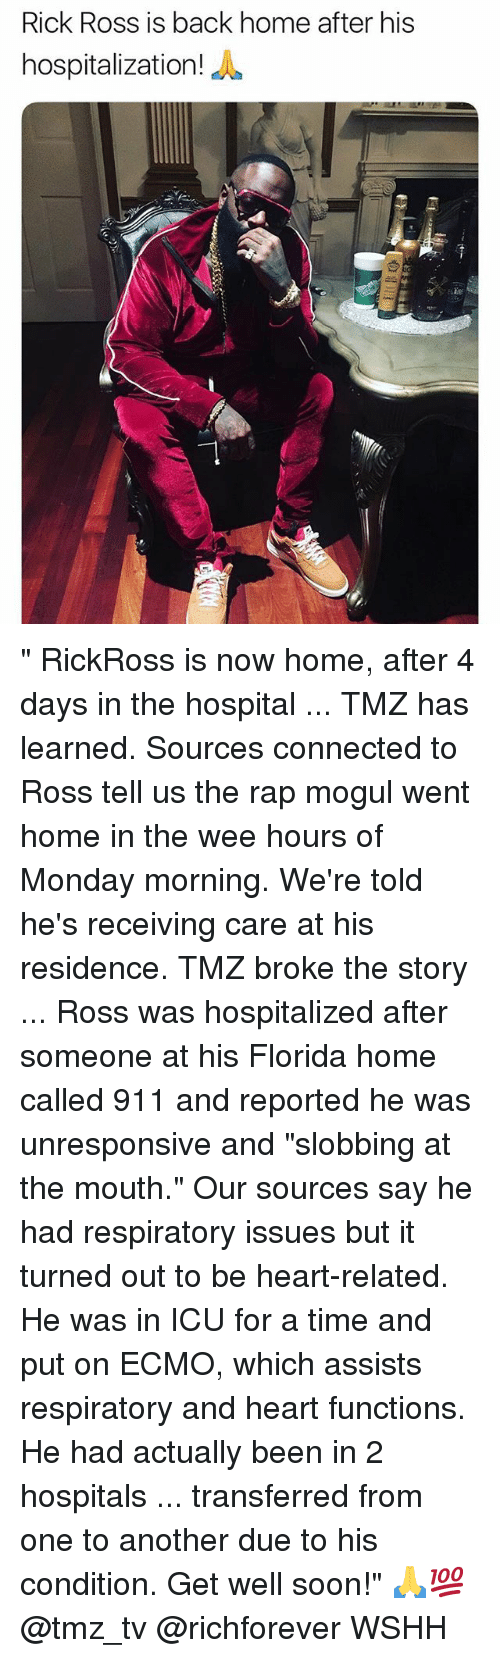 """respiratory: Rick Ross is back home after his  hospitalization  iE """" RickRoss is now home, after 4 days in the hospital ... TMZ has learned. Sources connected to Ross tell us the rap mogul went home in the wee hours of Monday morning. We're told he's receiving care at his residence. TMZ broke the story ... Ross was hospitalized after someone at his Florida home called 911 and reported he was unresponsive and """"slobbing at the mouth."""" Our sources say he had respiratory issues but it turned out to be heart-related. He was in ICU for a time and put on ECMO, which assists respiratory and heart functions. He had actually been in 2 hospitals ... transferred from one to another due to his condition. Get well soon!"""" 🙏💯 @tmz_tv @richforever WSHH"""